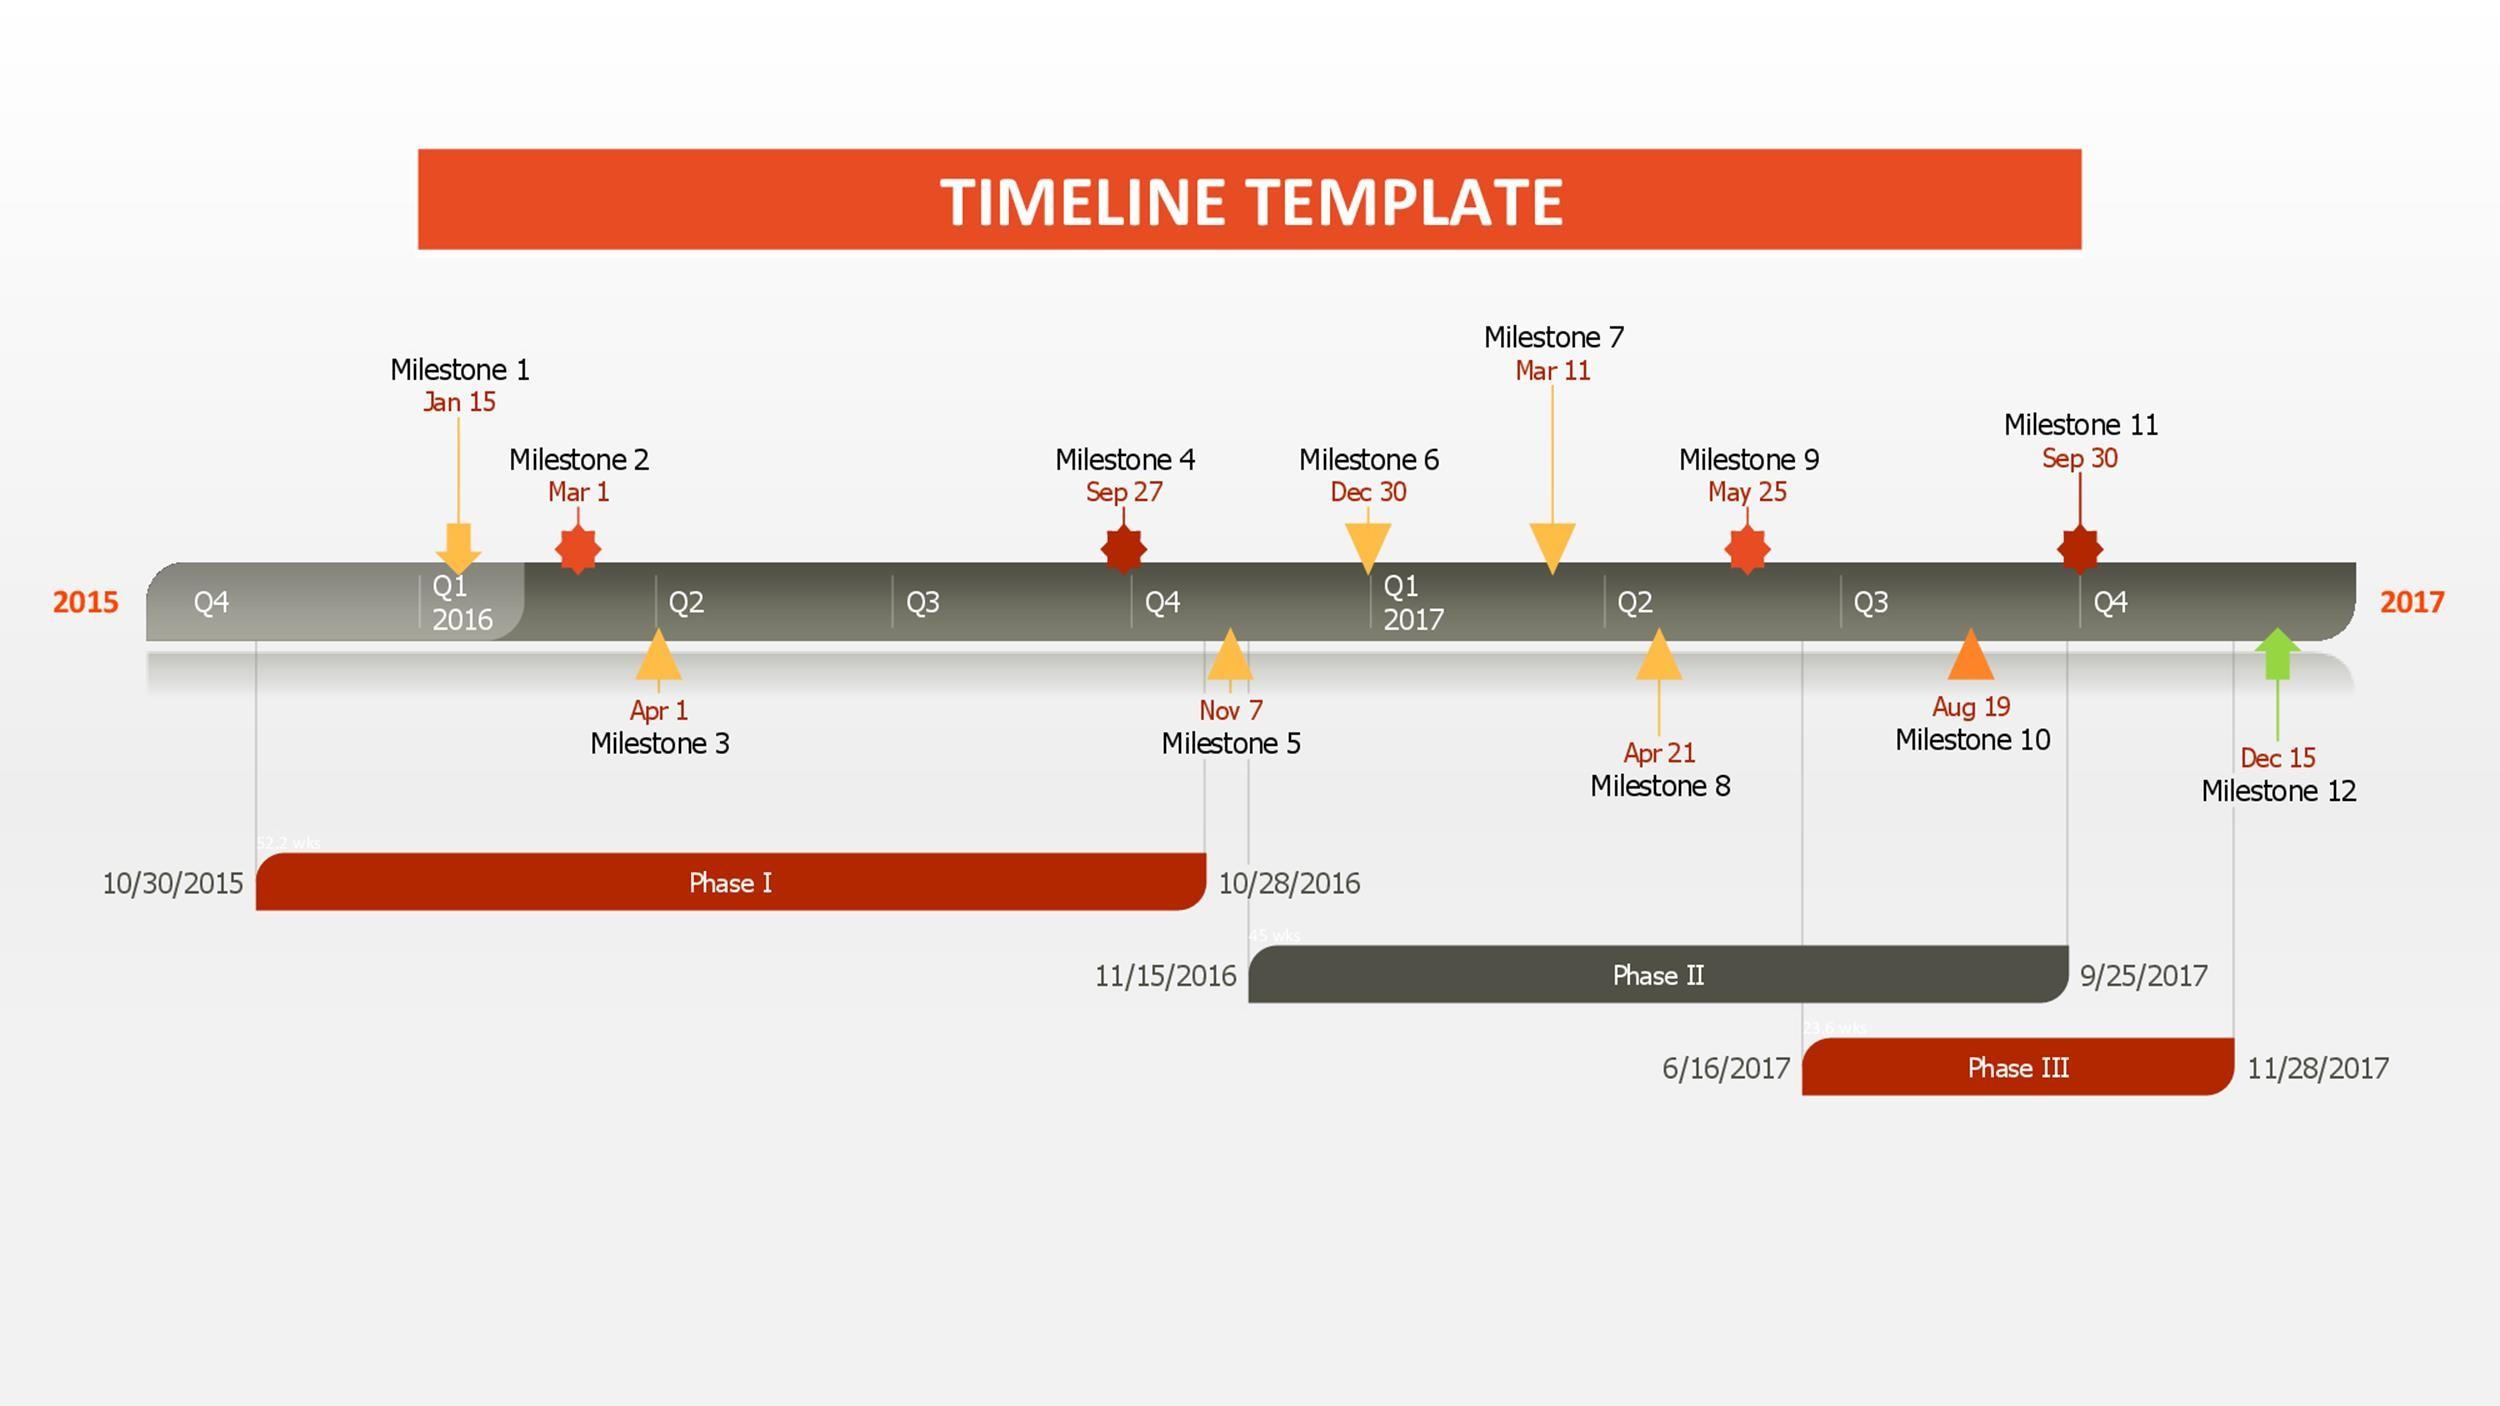 30+ Timeline Templates (Excel, Power Point, Word) - Template Lab - project timeline template